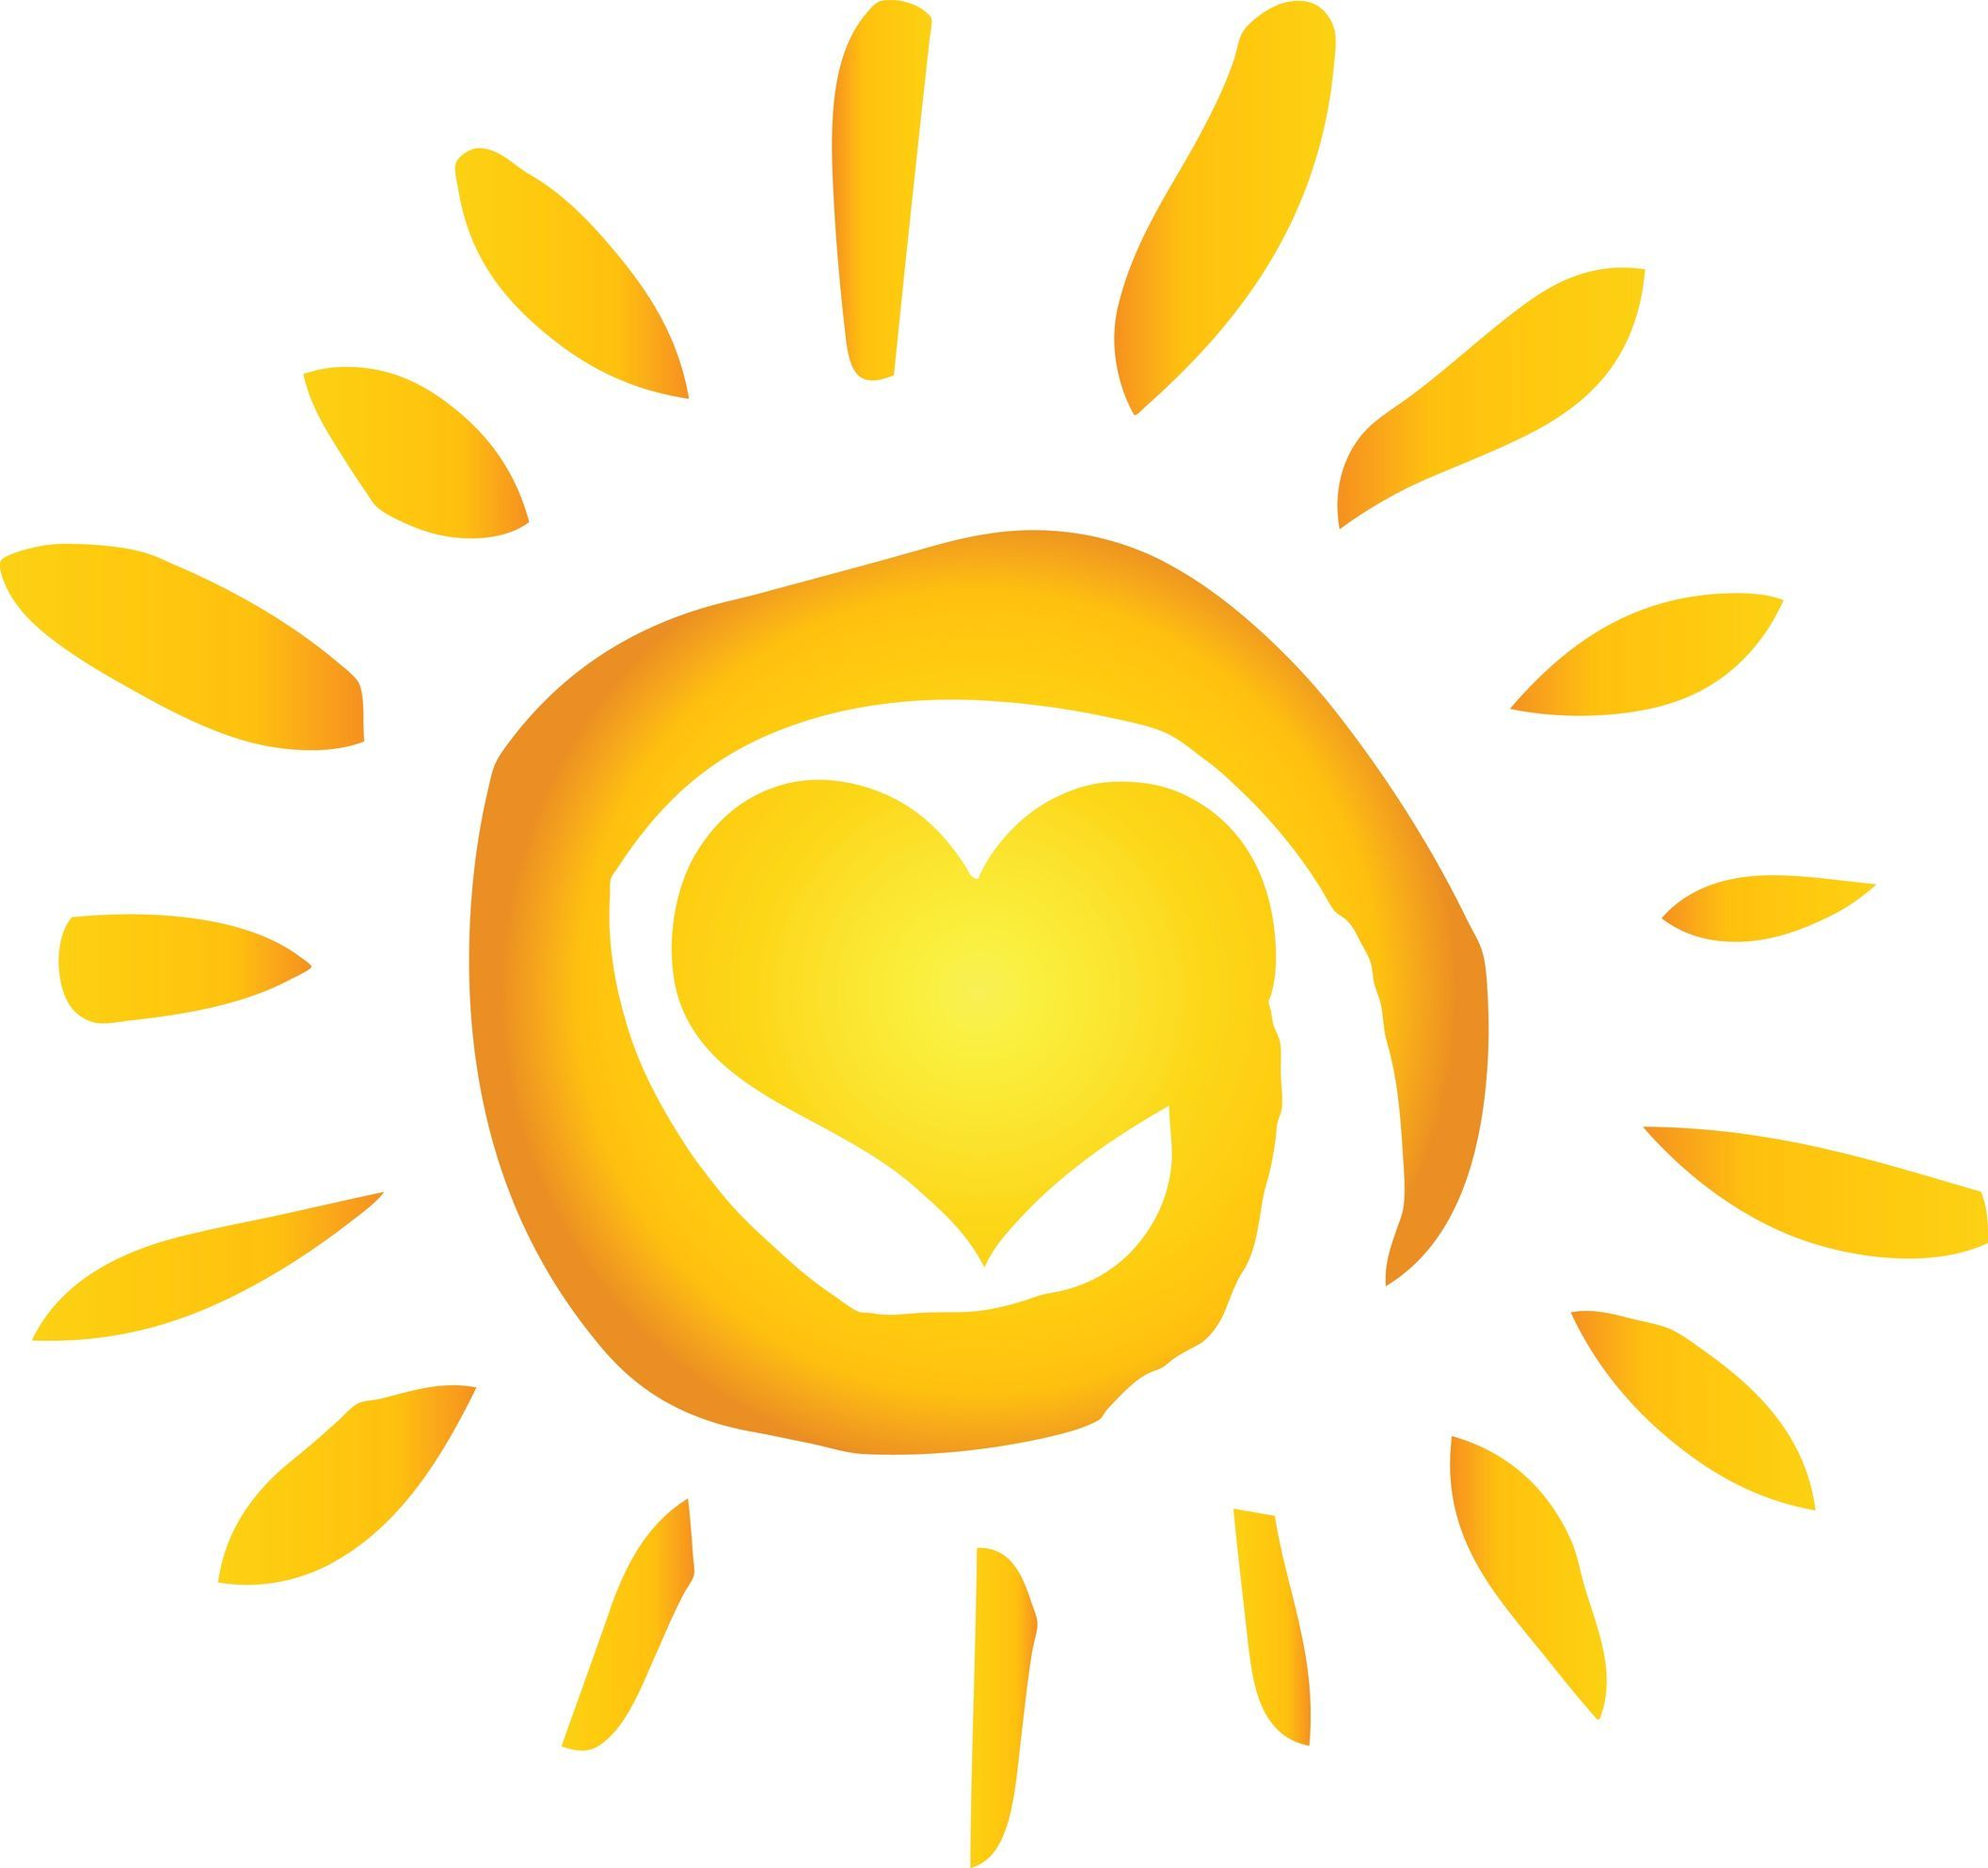 A Yellow Heart In A Spiral Of The Sun It Keeps Me Searchin For A Heart Of Gold Sunshine Tattoo Sun Tattoo Small Yellow Heart